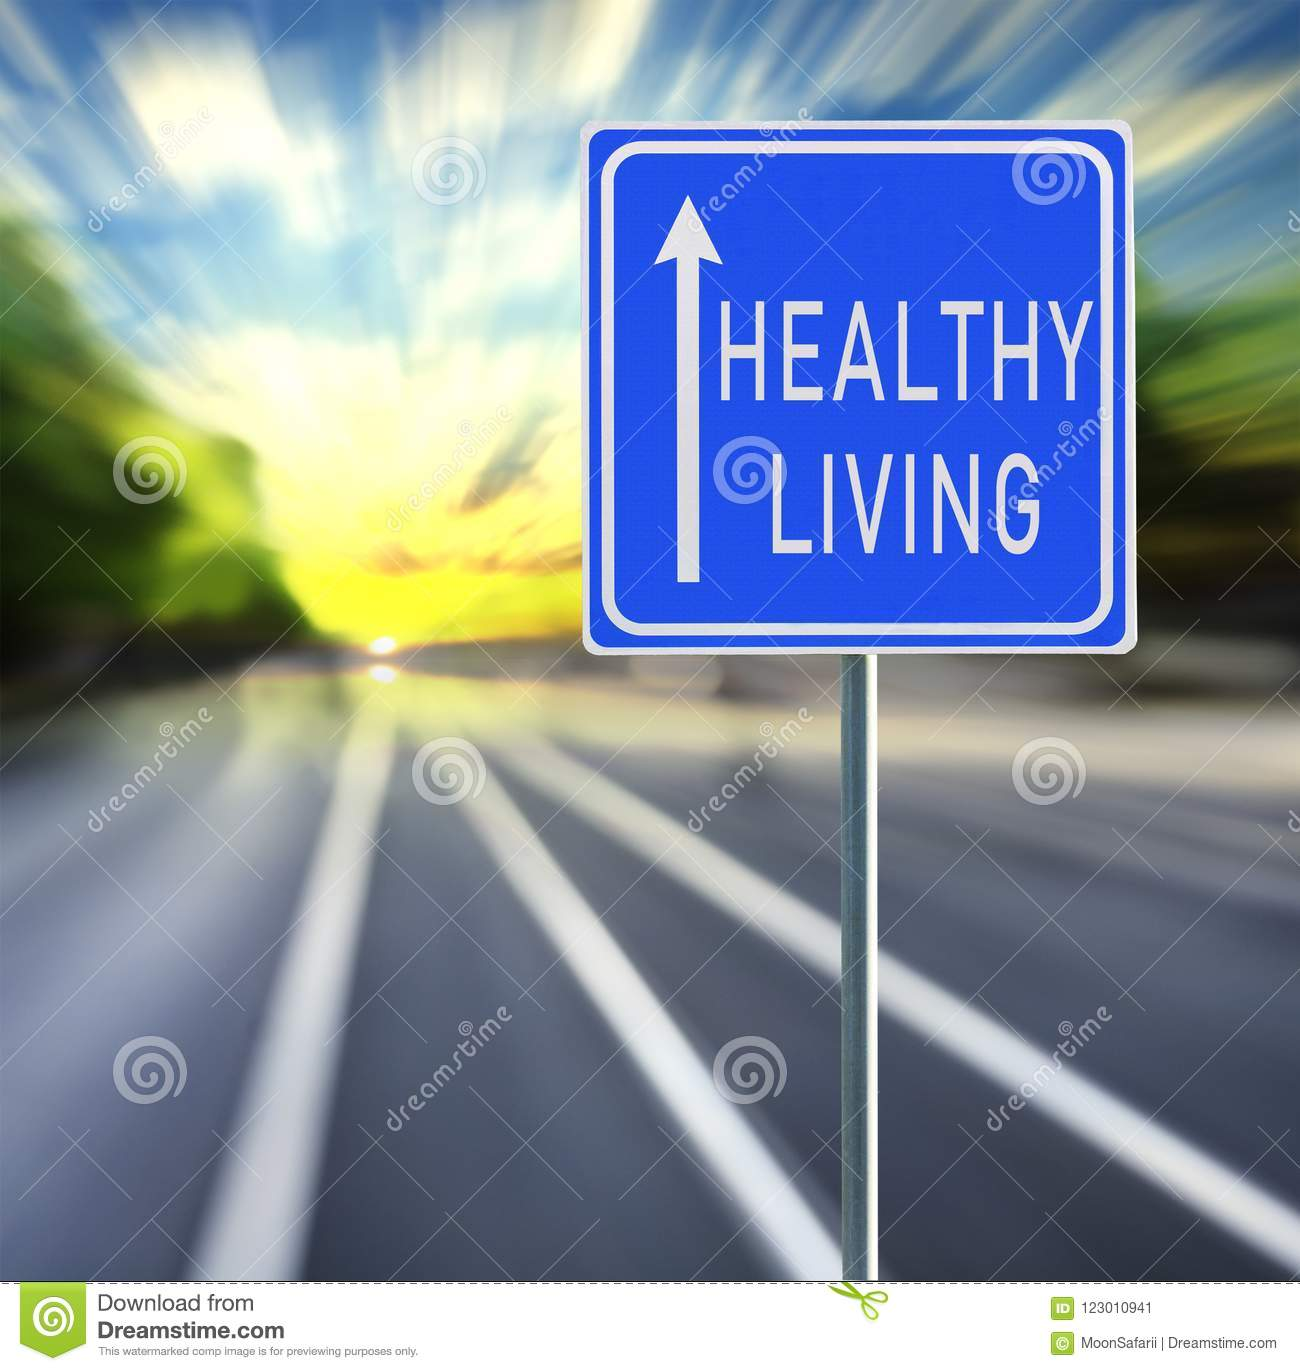 Healthy Living Road Sign on a Speedy Background with Sunset.